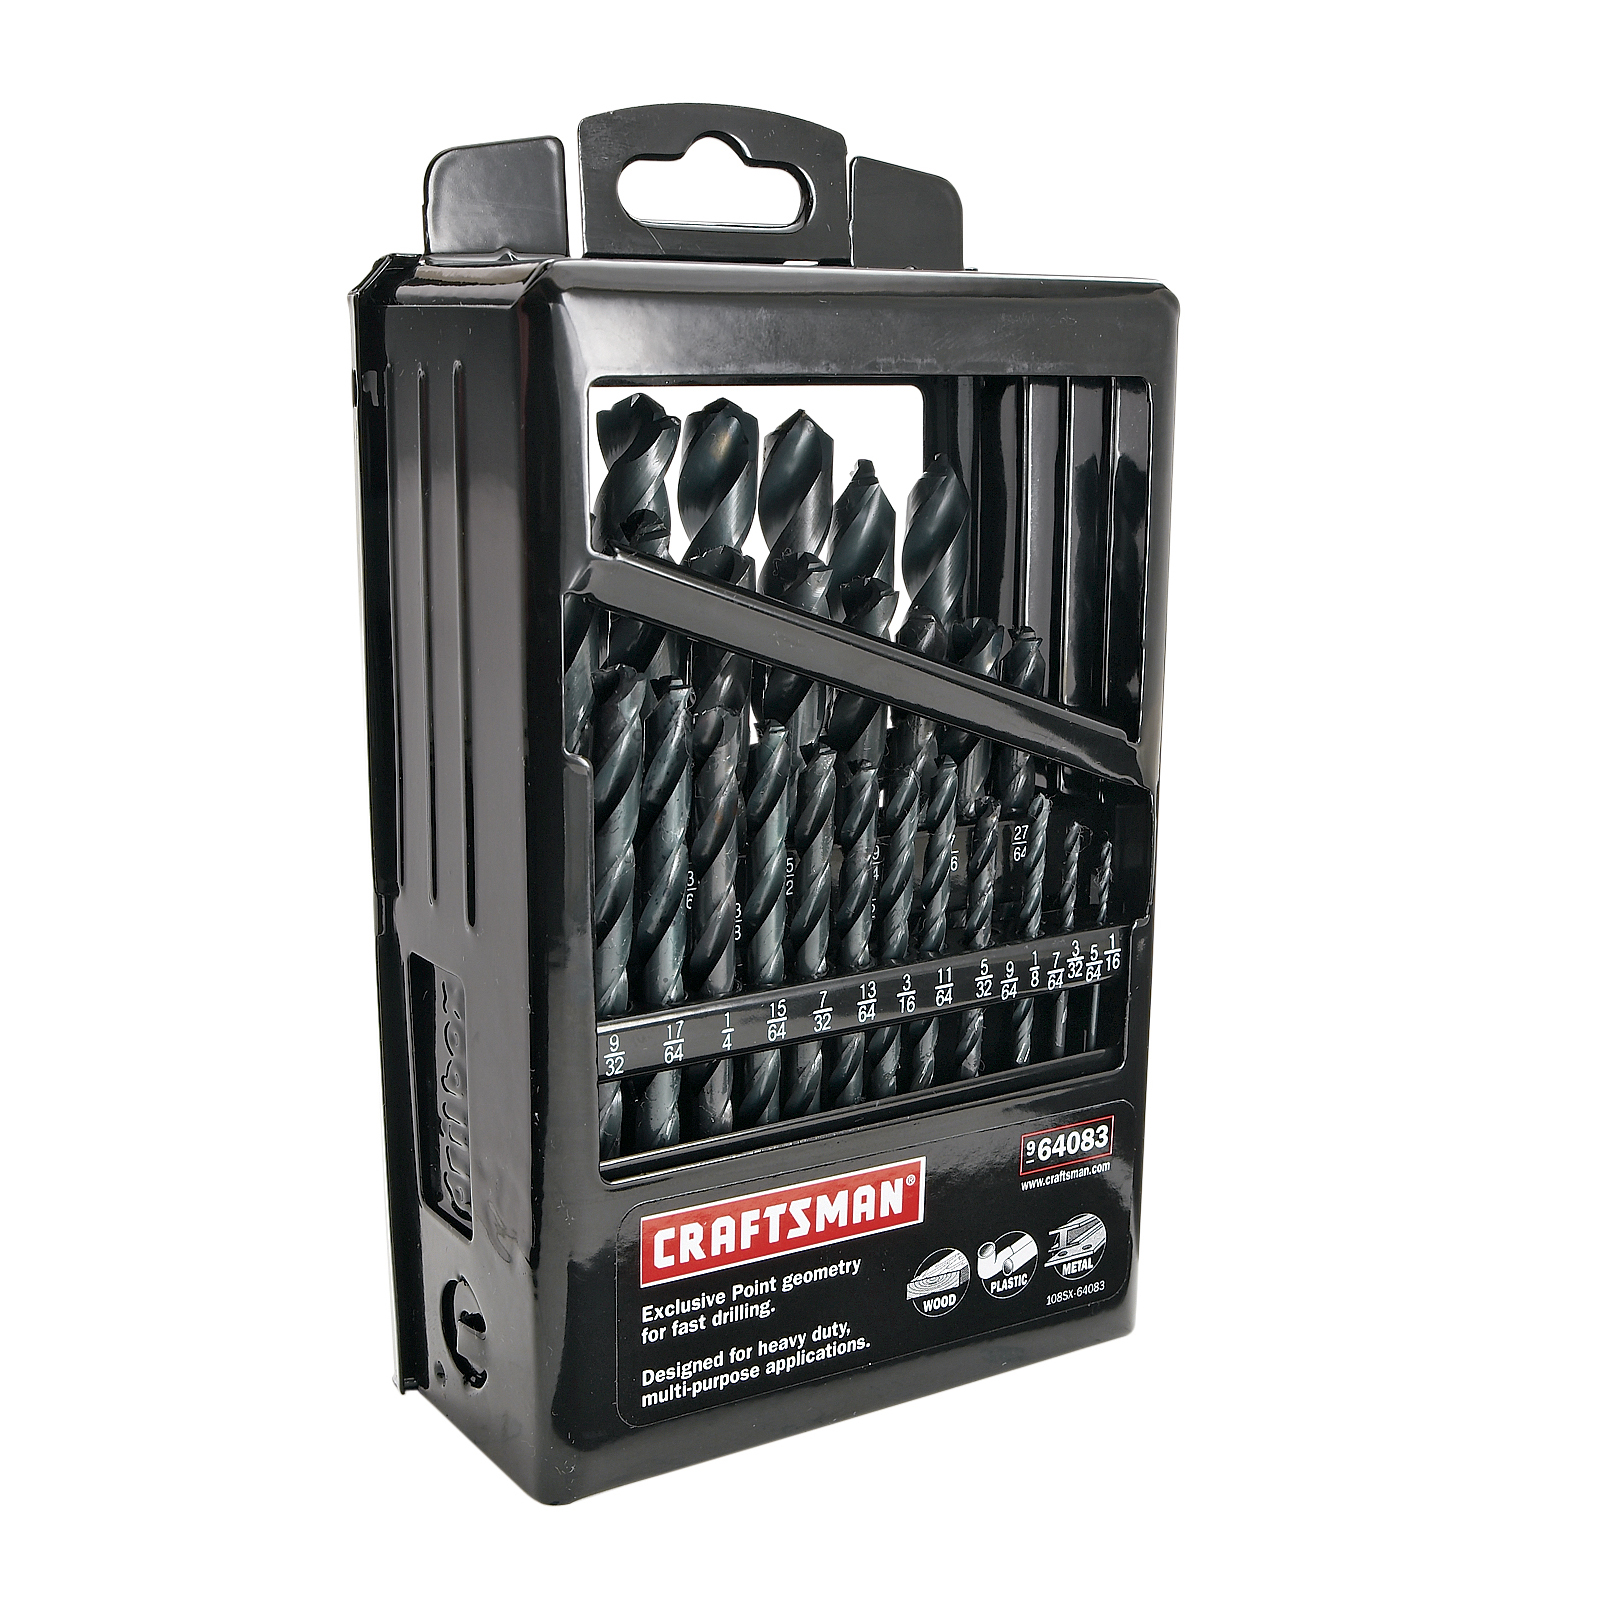 Craftsman 29 pc. Black Oxide Point Drill Bit Set